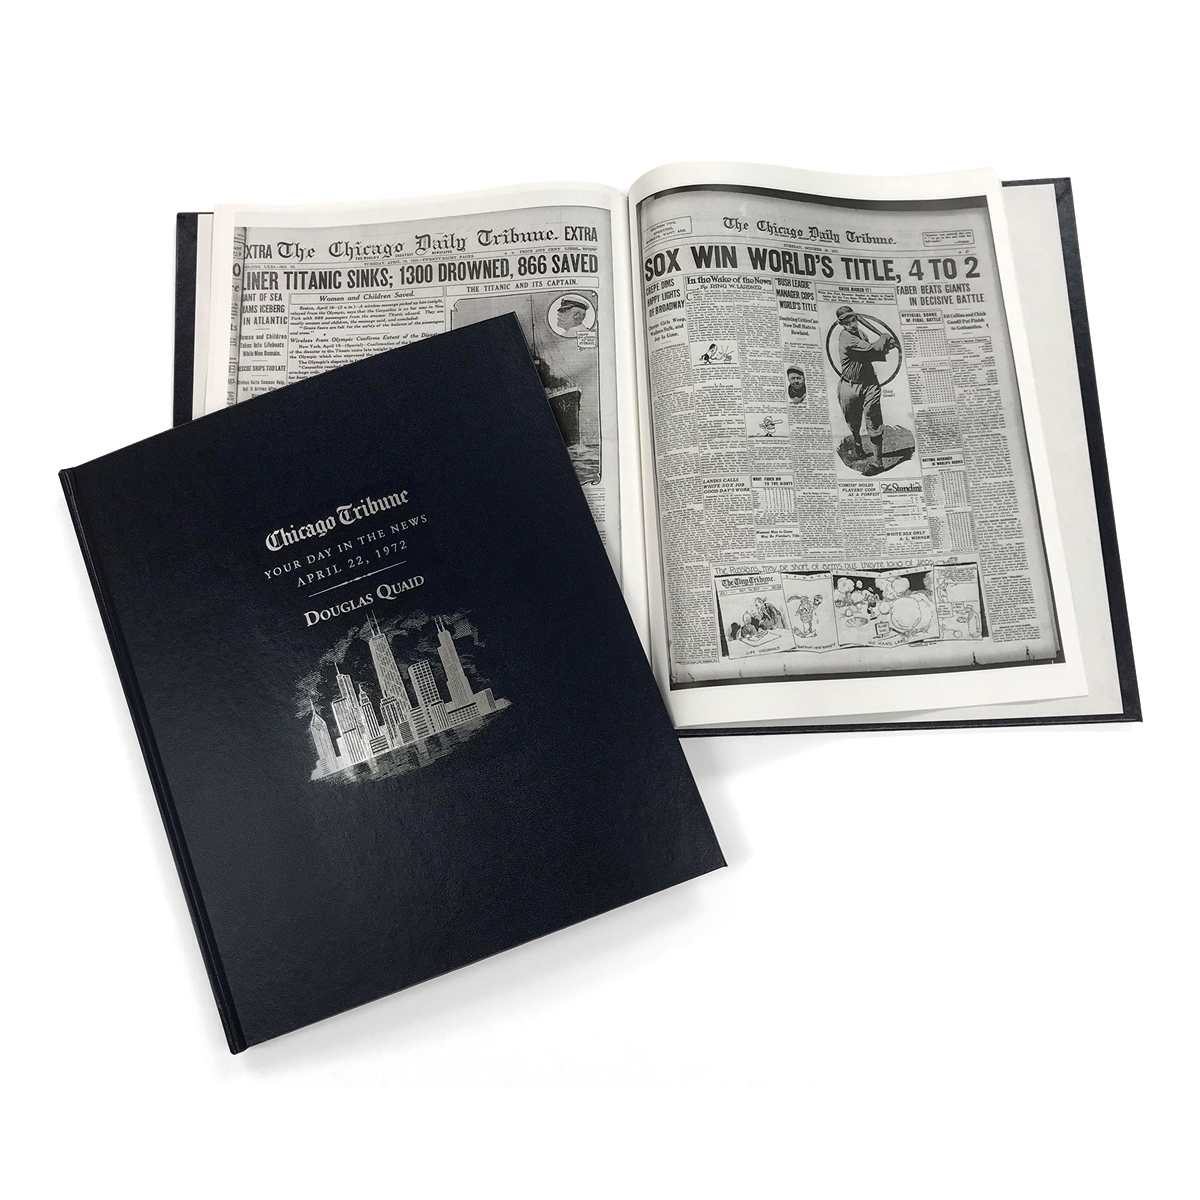 Chicago Tribune Commemorative Date Book